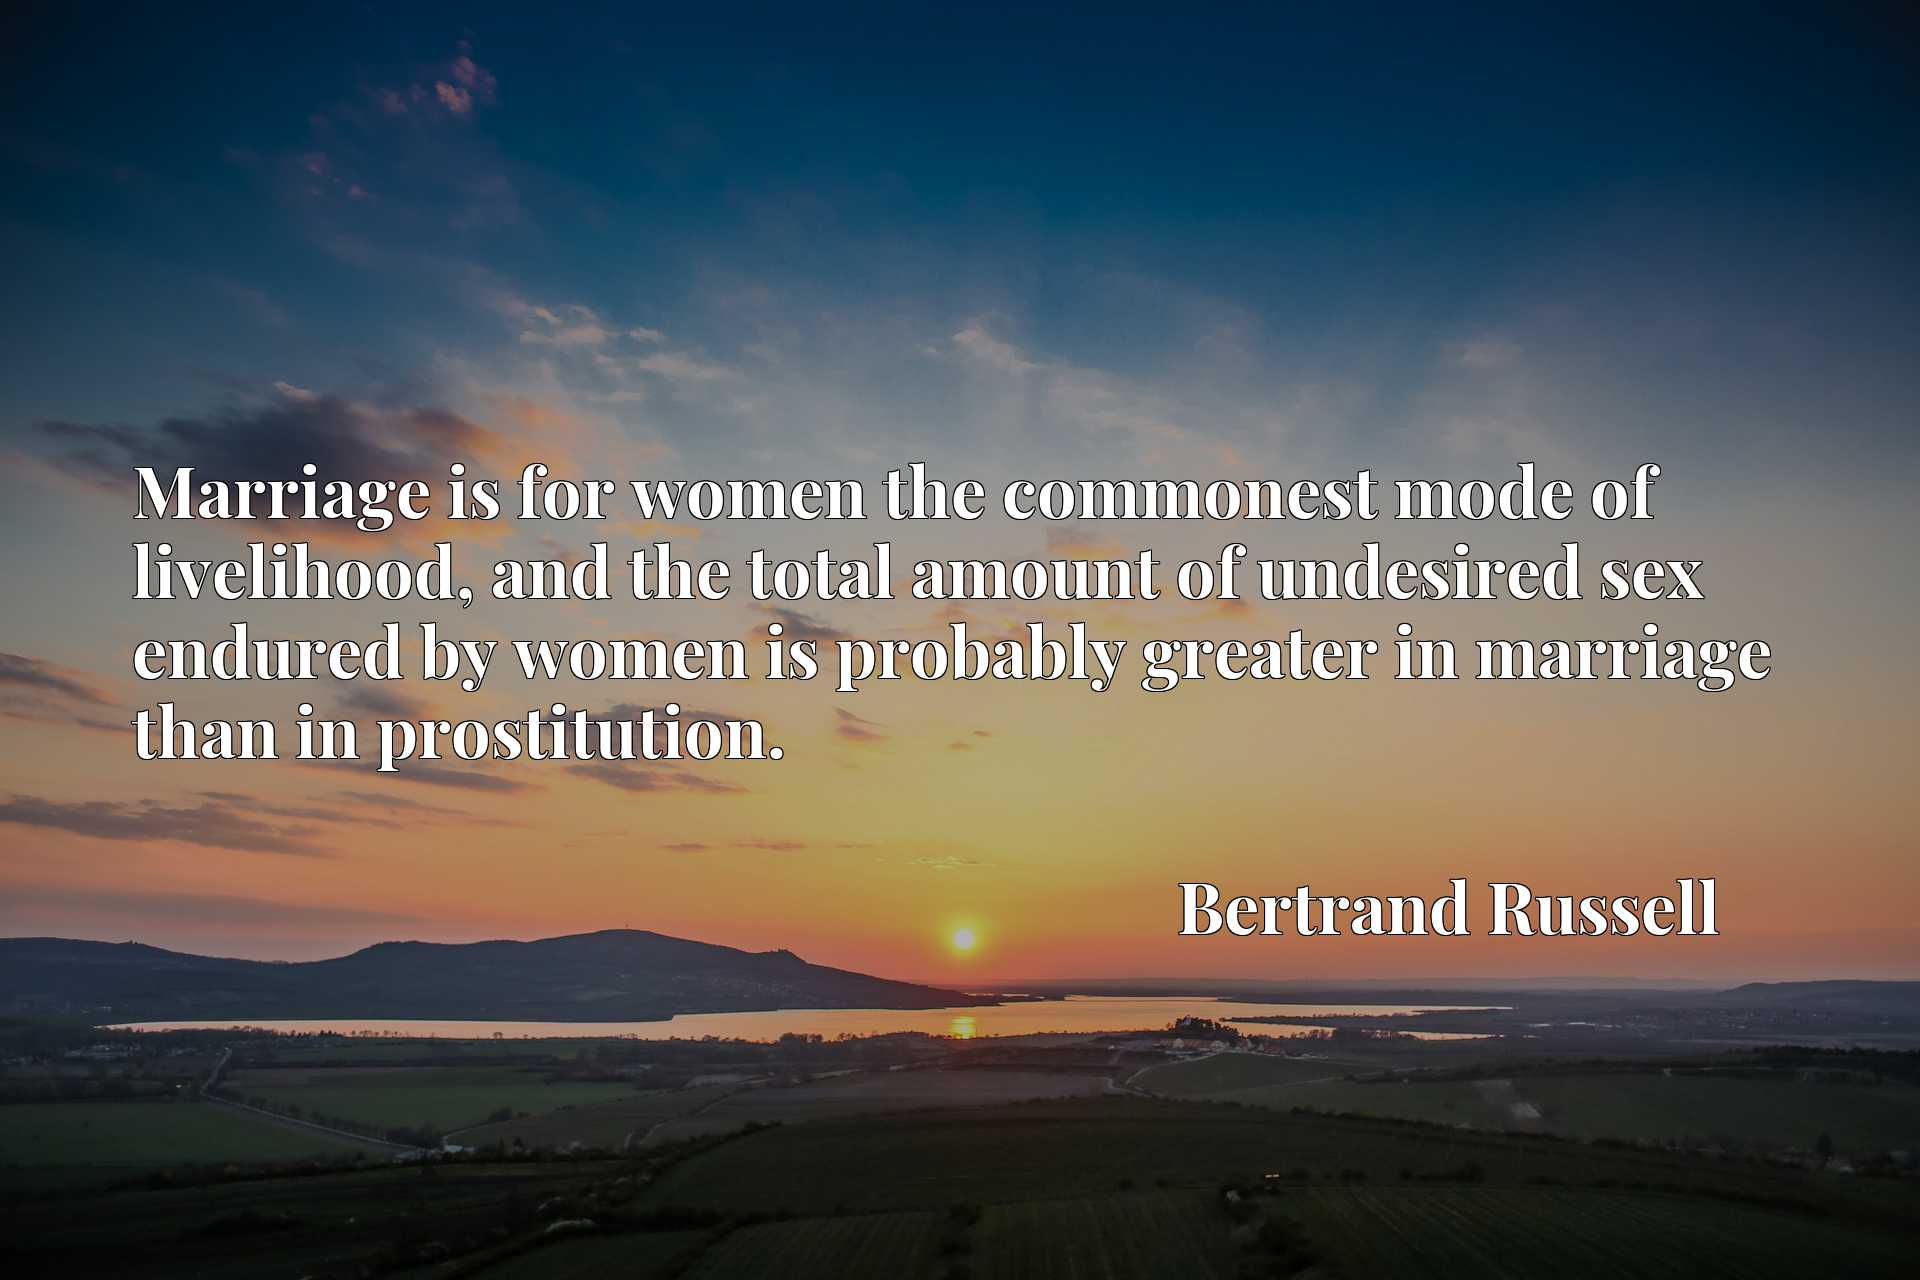 Quote Picture :Marriage is for women the commonest mode of livelihood, and the total amount of undesired sex endured by women is probably greater in marriage than in prostitution.